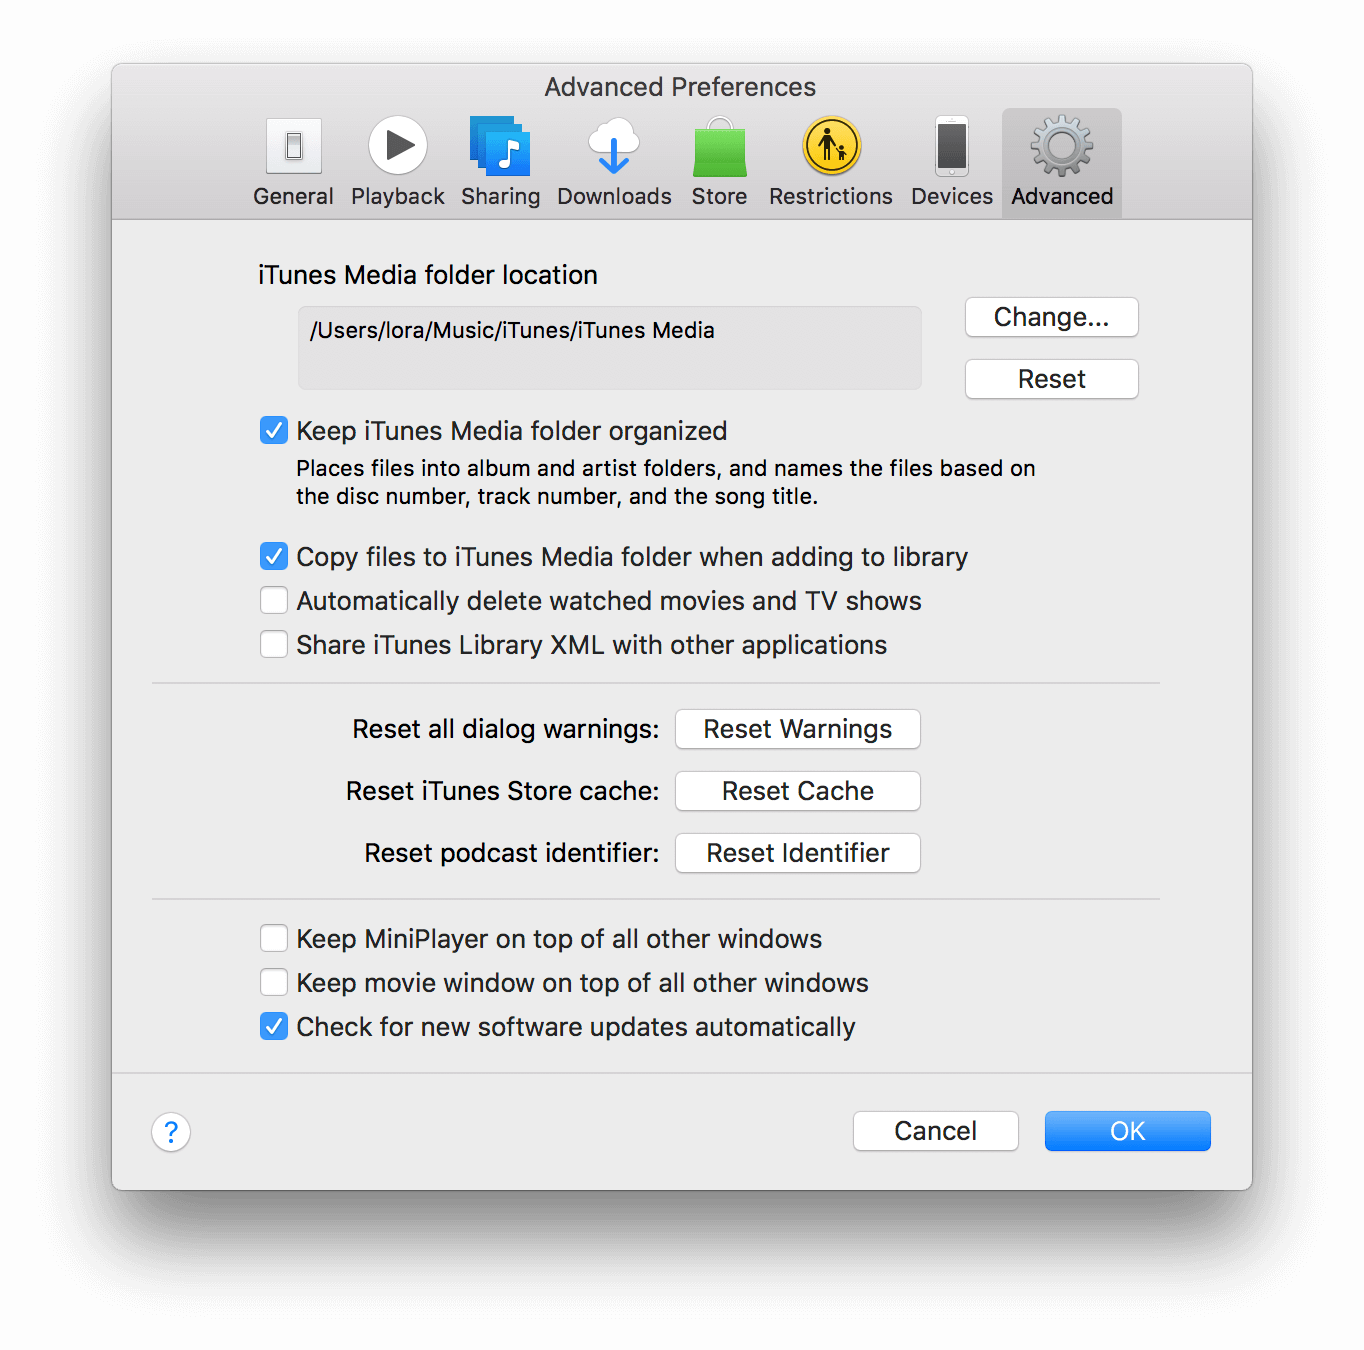 macbook cache reset